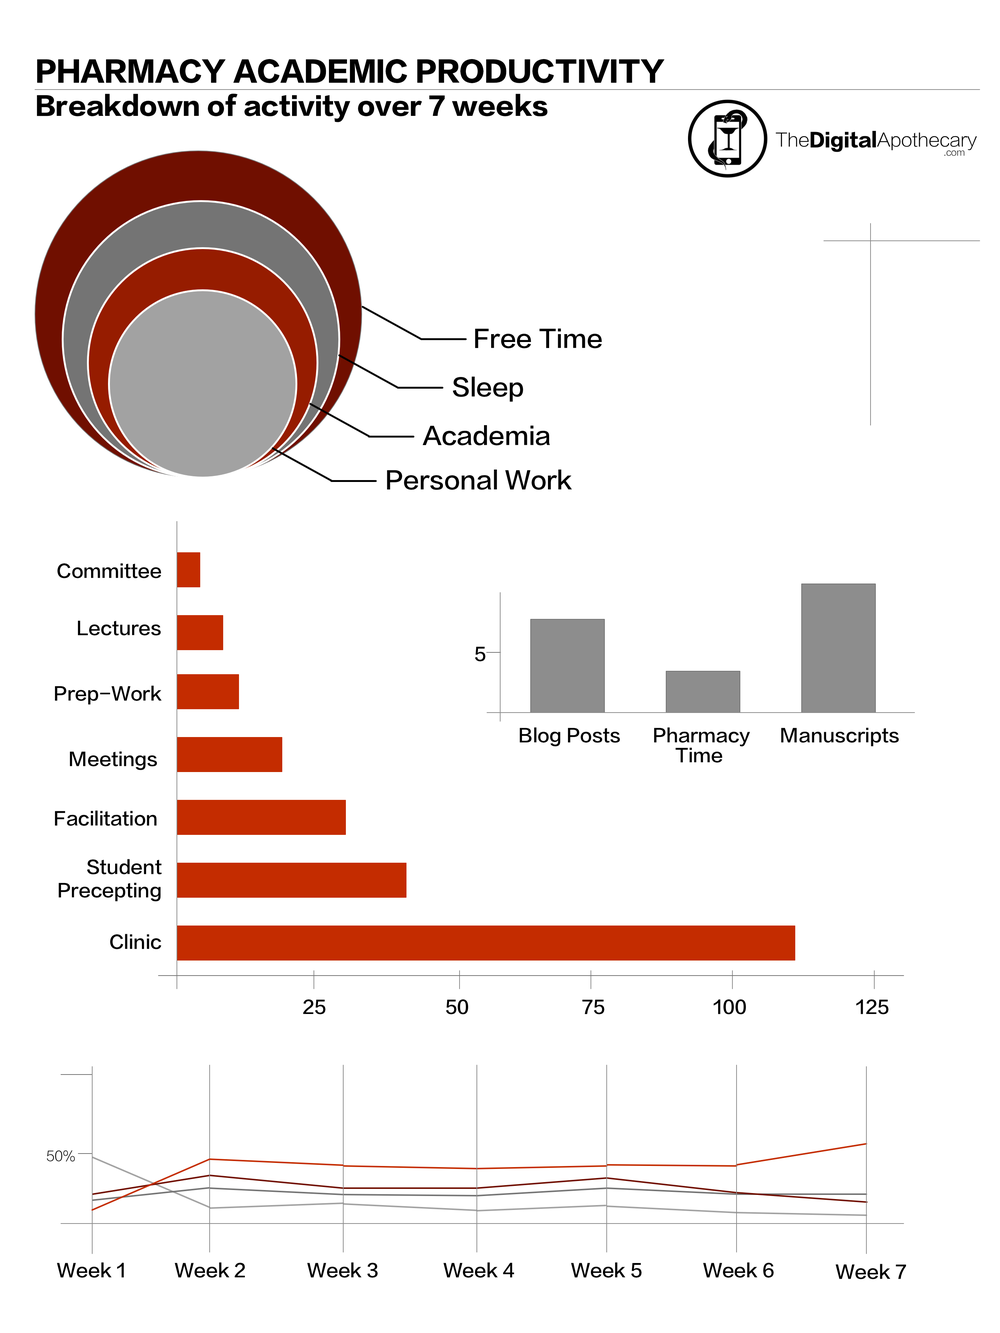 Breakdown of work and play over 7 weeks in an Academic Pharmacy position.